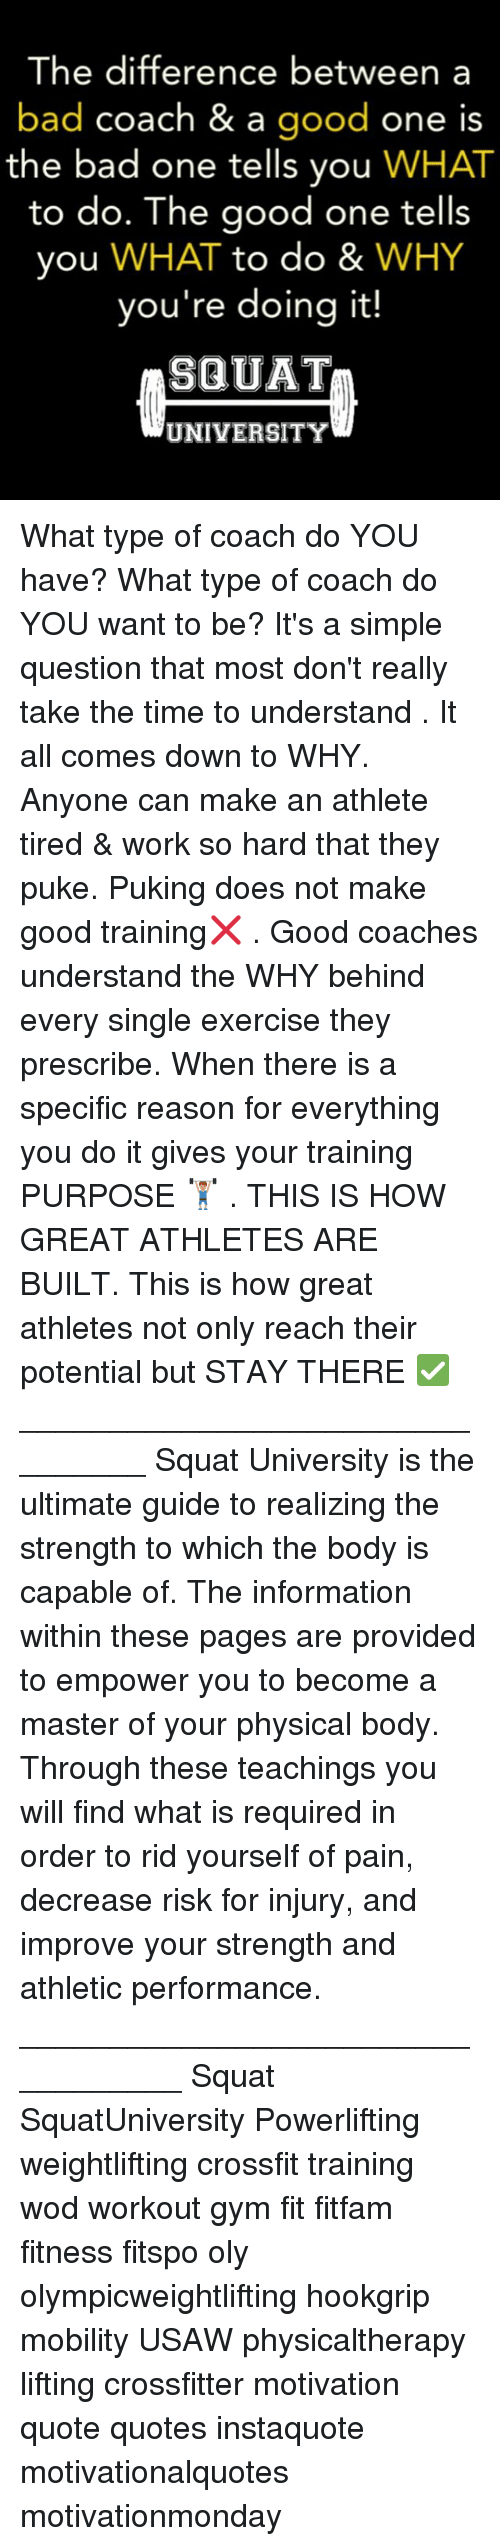 pukes: The difference between a  bad coach & a  good  one is  the bad one tells you  WHAT  to do. The good one tells  you  WHAT to do &  WHY  you're doing it!  SQUAT  UNIVERSITY What type of coach do YOU have? What type of coach do YOU want to be? It's a simple question that most don't really take the time to understand . It all comes down to WHY. Anyone can make an athlete tired & work so hard that they puke. Puking does not make good training❌ . Good coaches understand the WHY behind every single exercise they prescribe. When there is a specific reason for everything you do it gives your training PURPOSE 🏋🏽 . THIS IS HOW GREAT ATHLETES ARE BUILT. This is how great athletes not only reach their potential but STAY THERE ✅ ________________________________ Squat University is the ultimate guide to realizing the strength to which the body is capable of. The information within these pages are provided to empower you to become a master of your physical body. Through these teachings you will find what is required in order to rid yourself of pain, decrease risk for injury, and improve your strength and athletic performance. __________________________________ Squat SquatUniversity Powerlifting weightlifting crossfit training wod workout gym fit fitfam fitness fitspo oly olympicweightlifting hookgrip mobility USAW physicaltherapy lifting crossfitter motivation quote quotes instaquote motivationalquotes motivationmonday